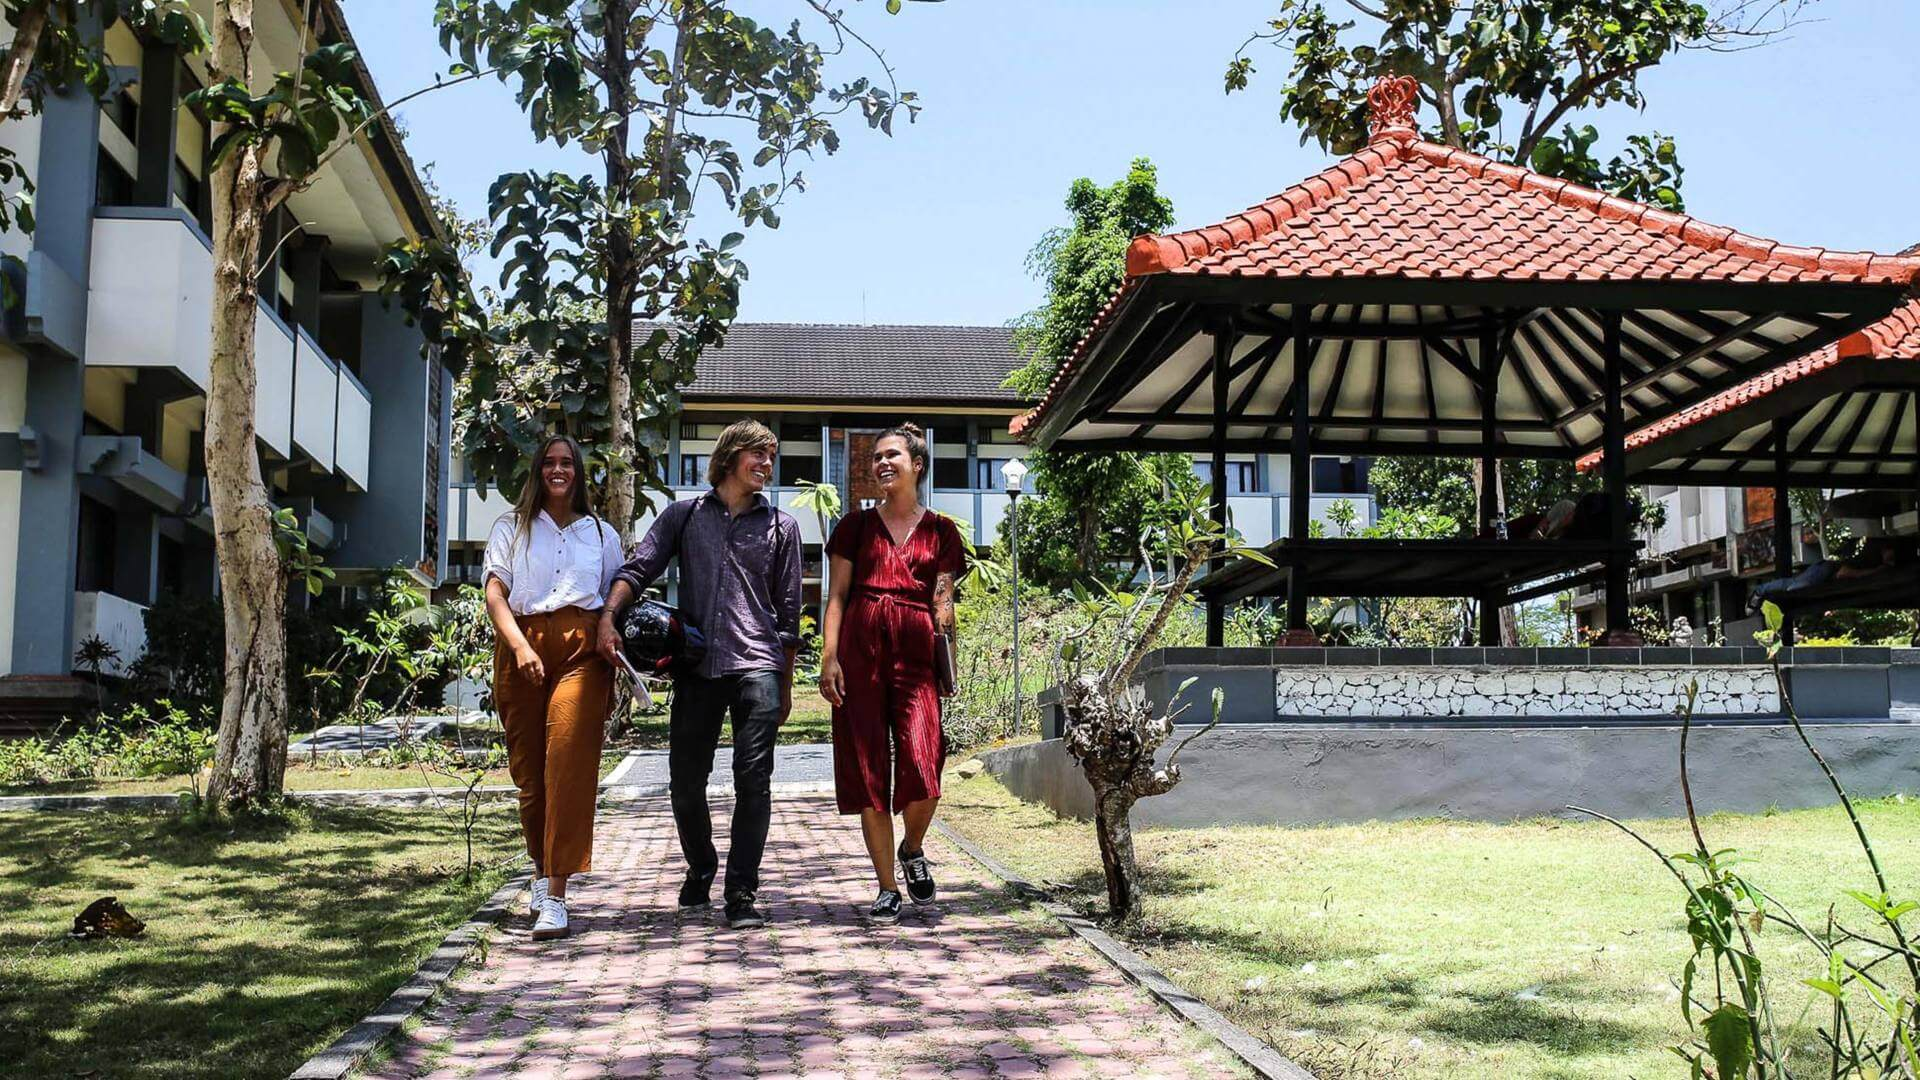 Group of students walking on the campus in Bali.